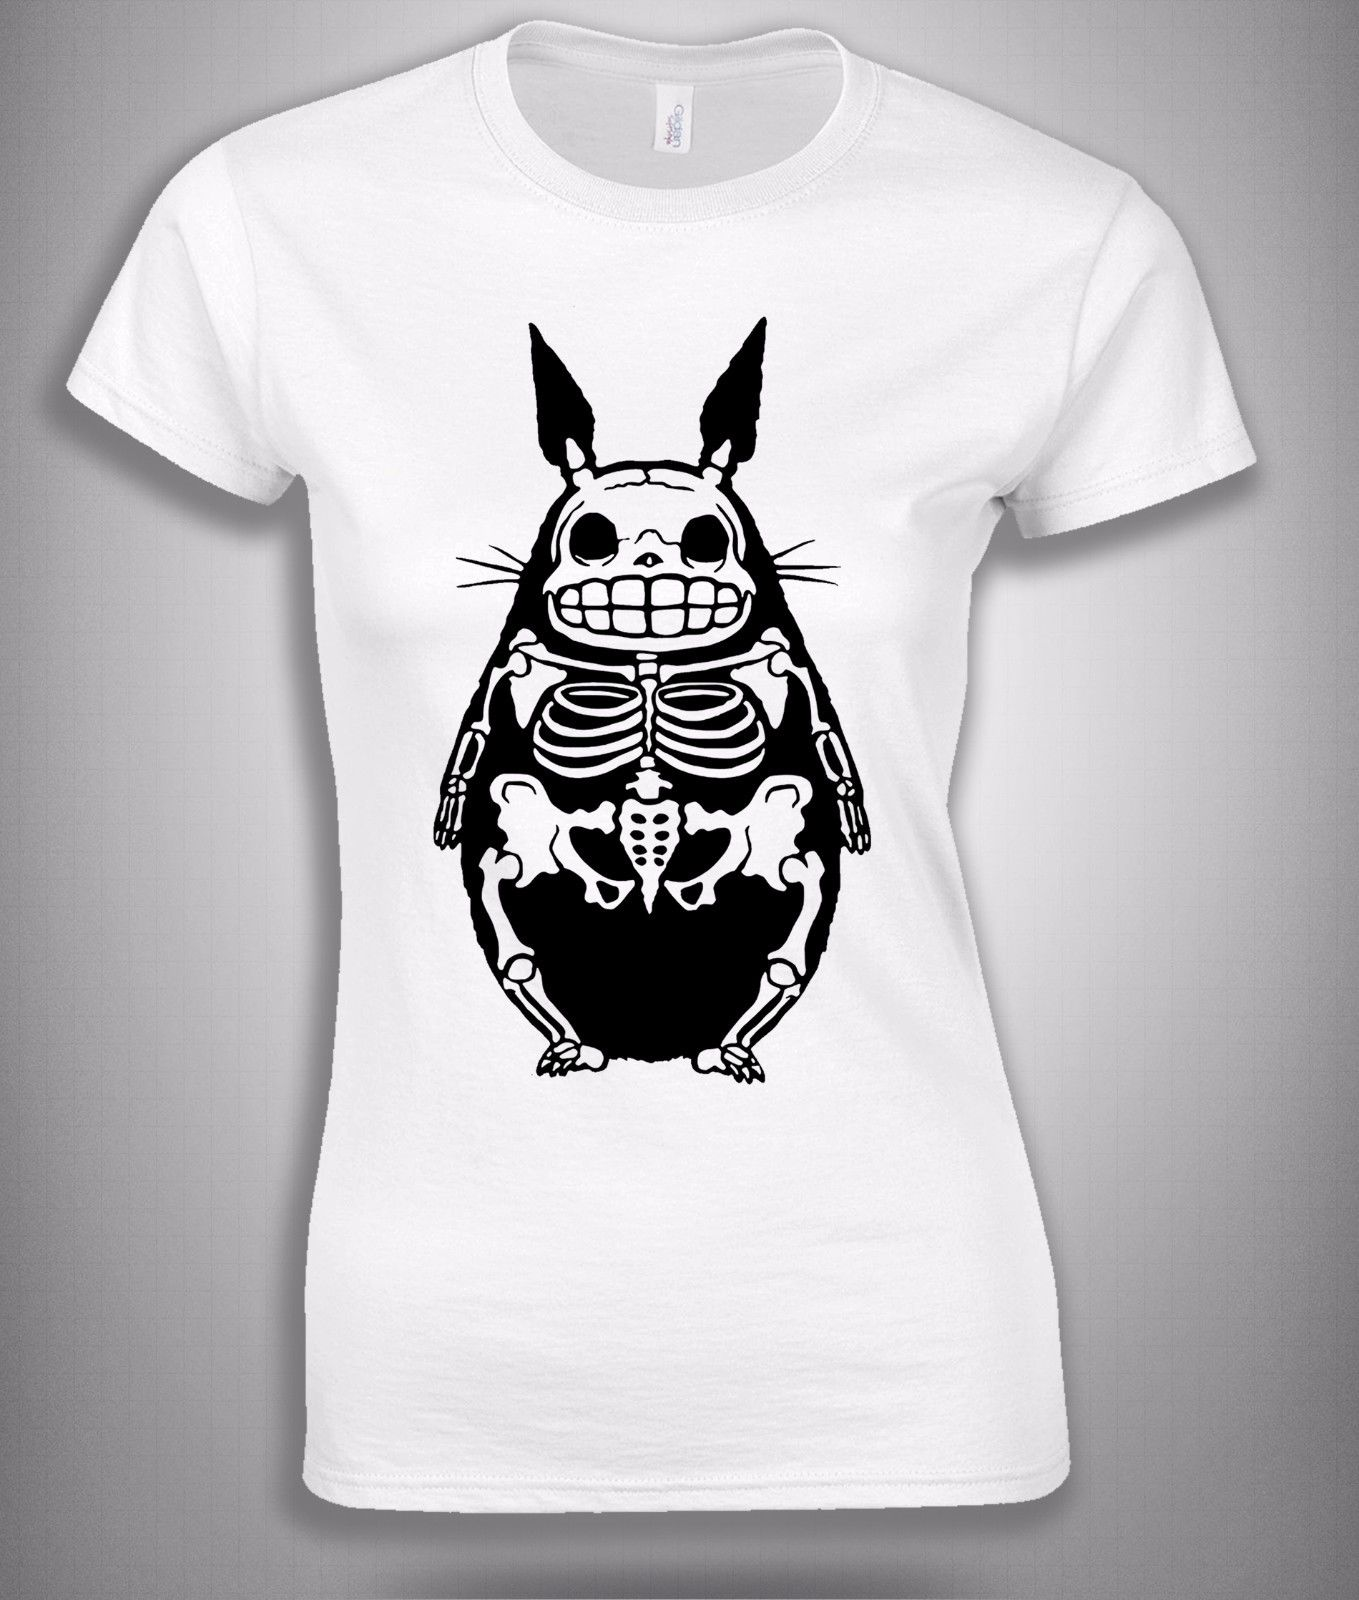 c6c015b8 Skeleton Totoro Funny Anime T Shirt In White Woman Style Size S,M,L,XL  Printed 2017 Summer Funny T Shirts 2017 Women Fashion-in T-Shirts from  Women's ...